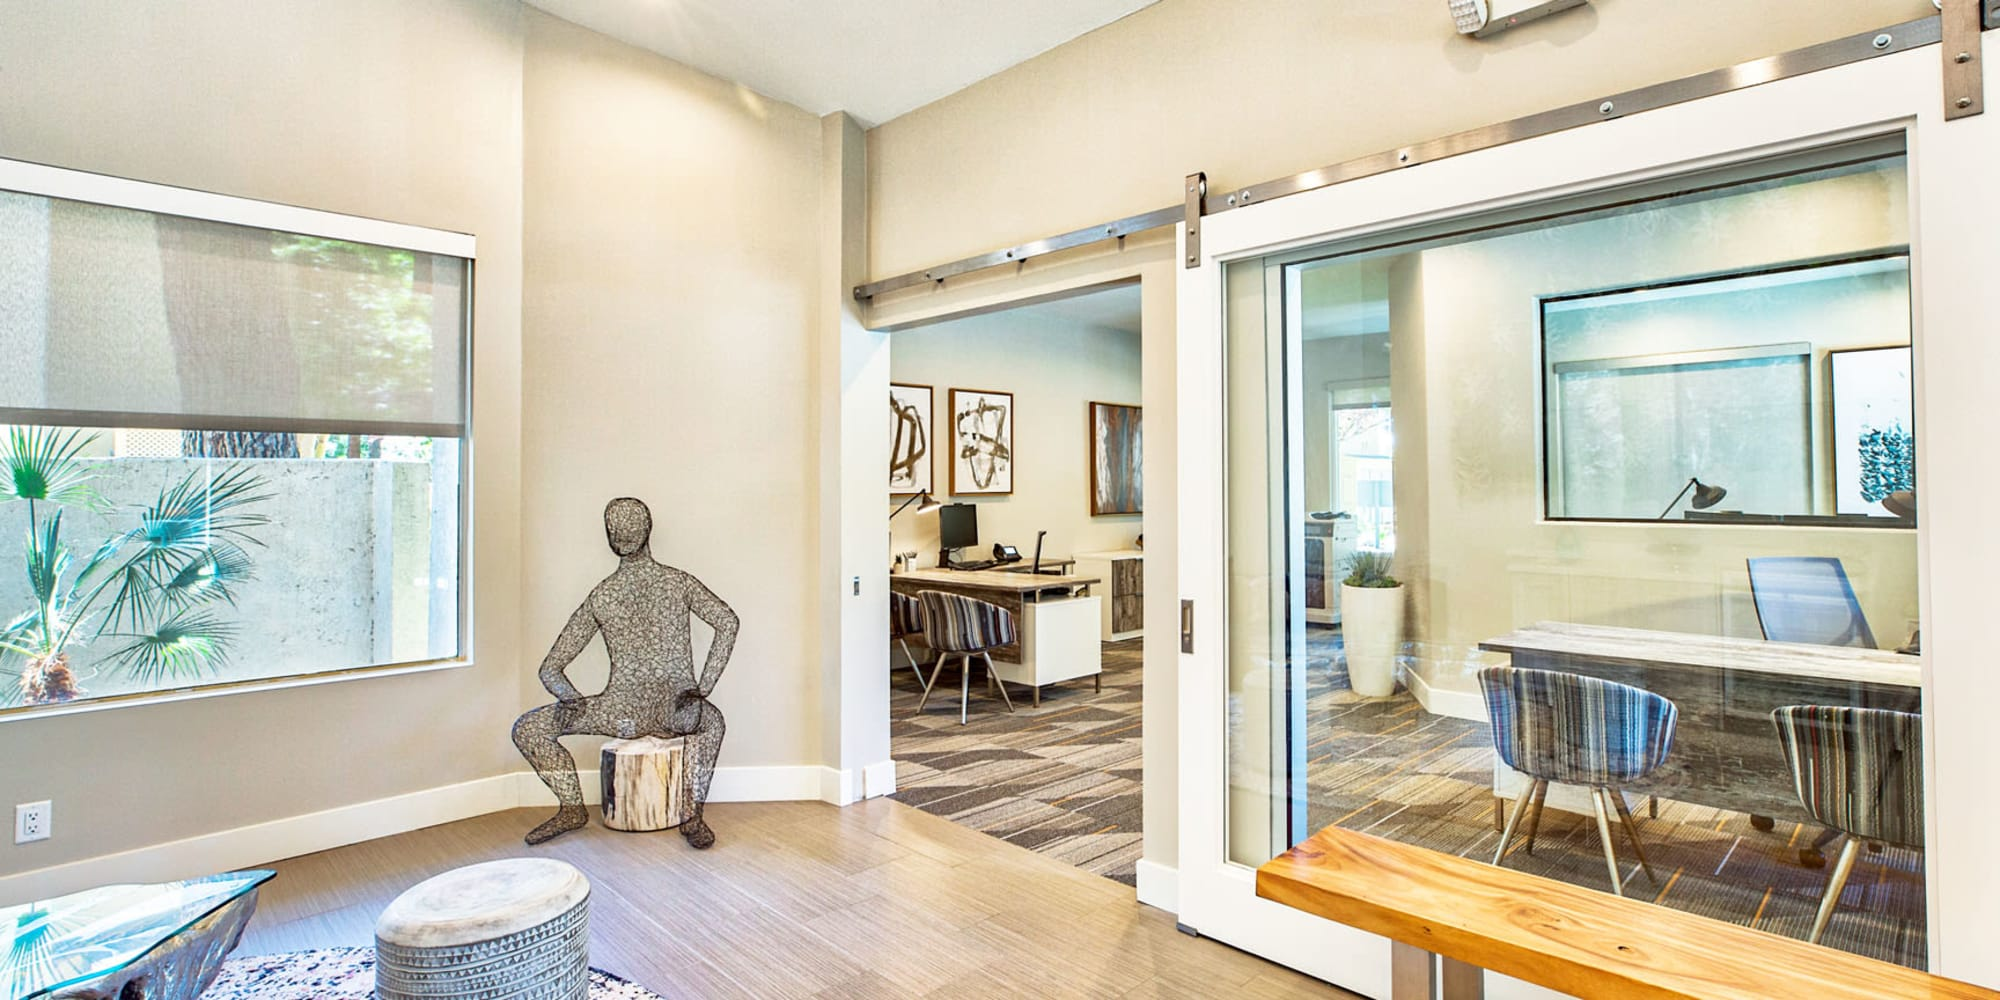 Lounge area near the leasing office at Mountain Vista in Victorville, California